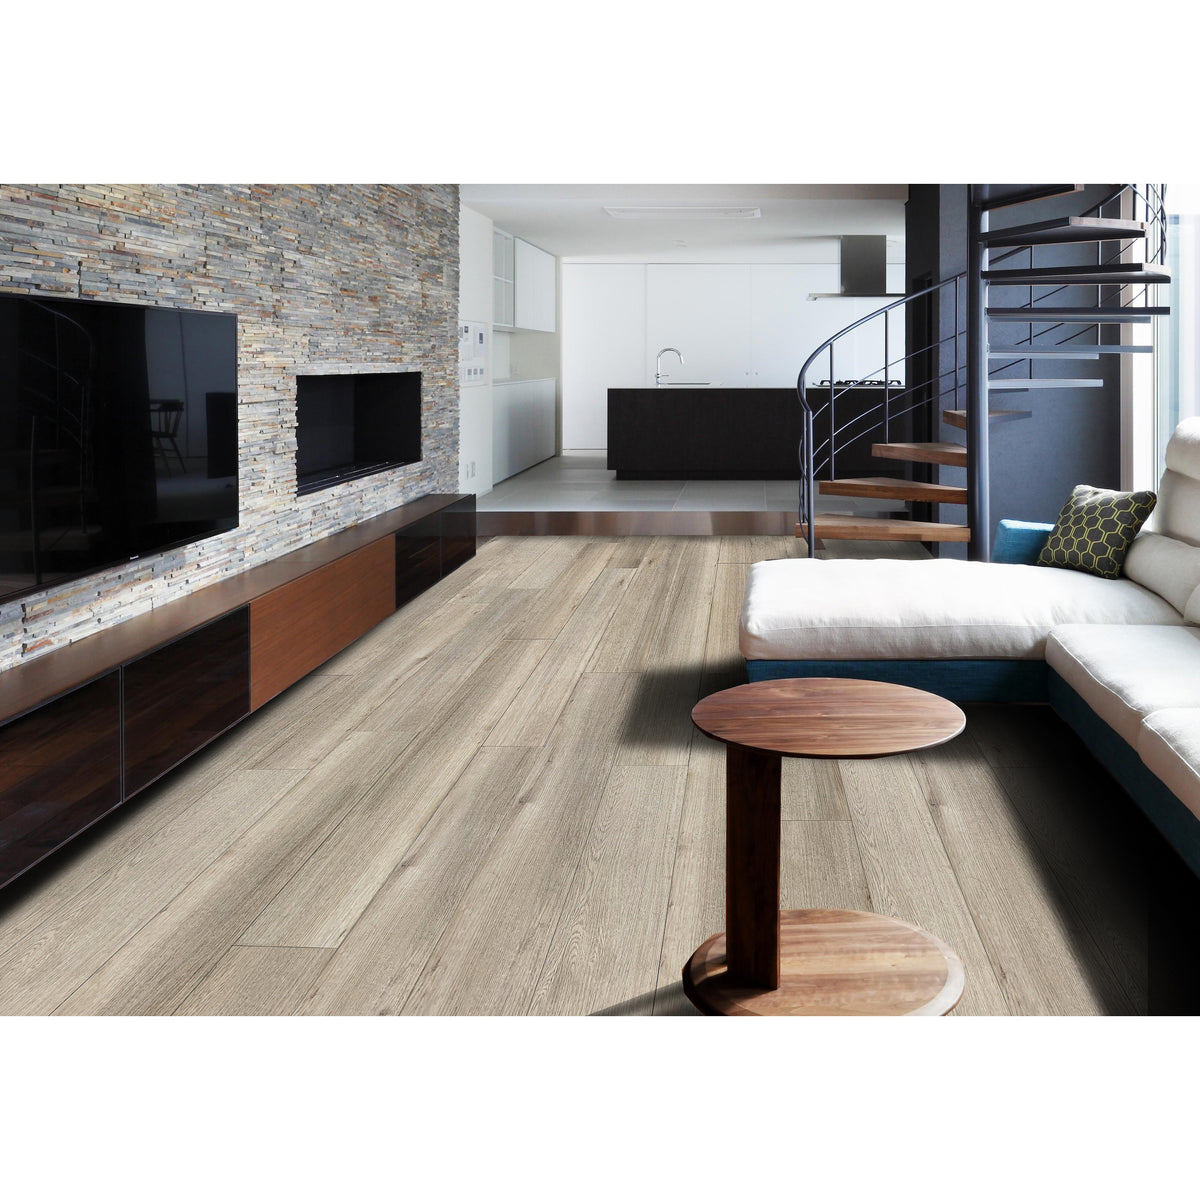 NexxaCore Luxury Vinyl Plank - The Cosmos - Phoebe Installed